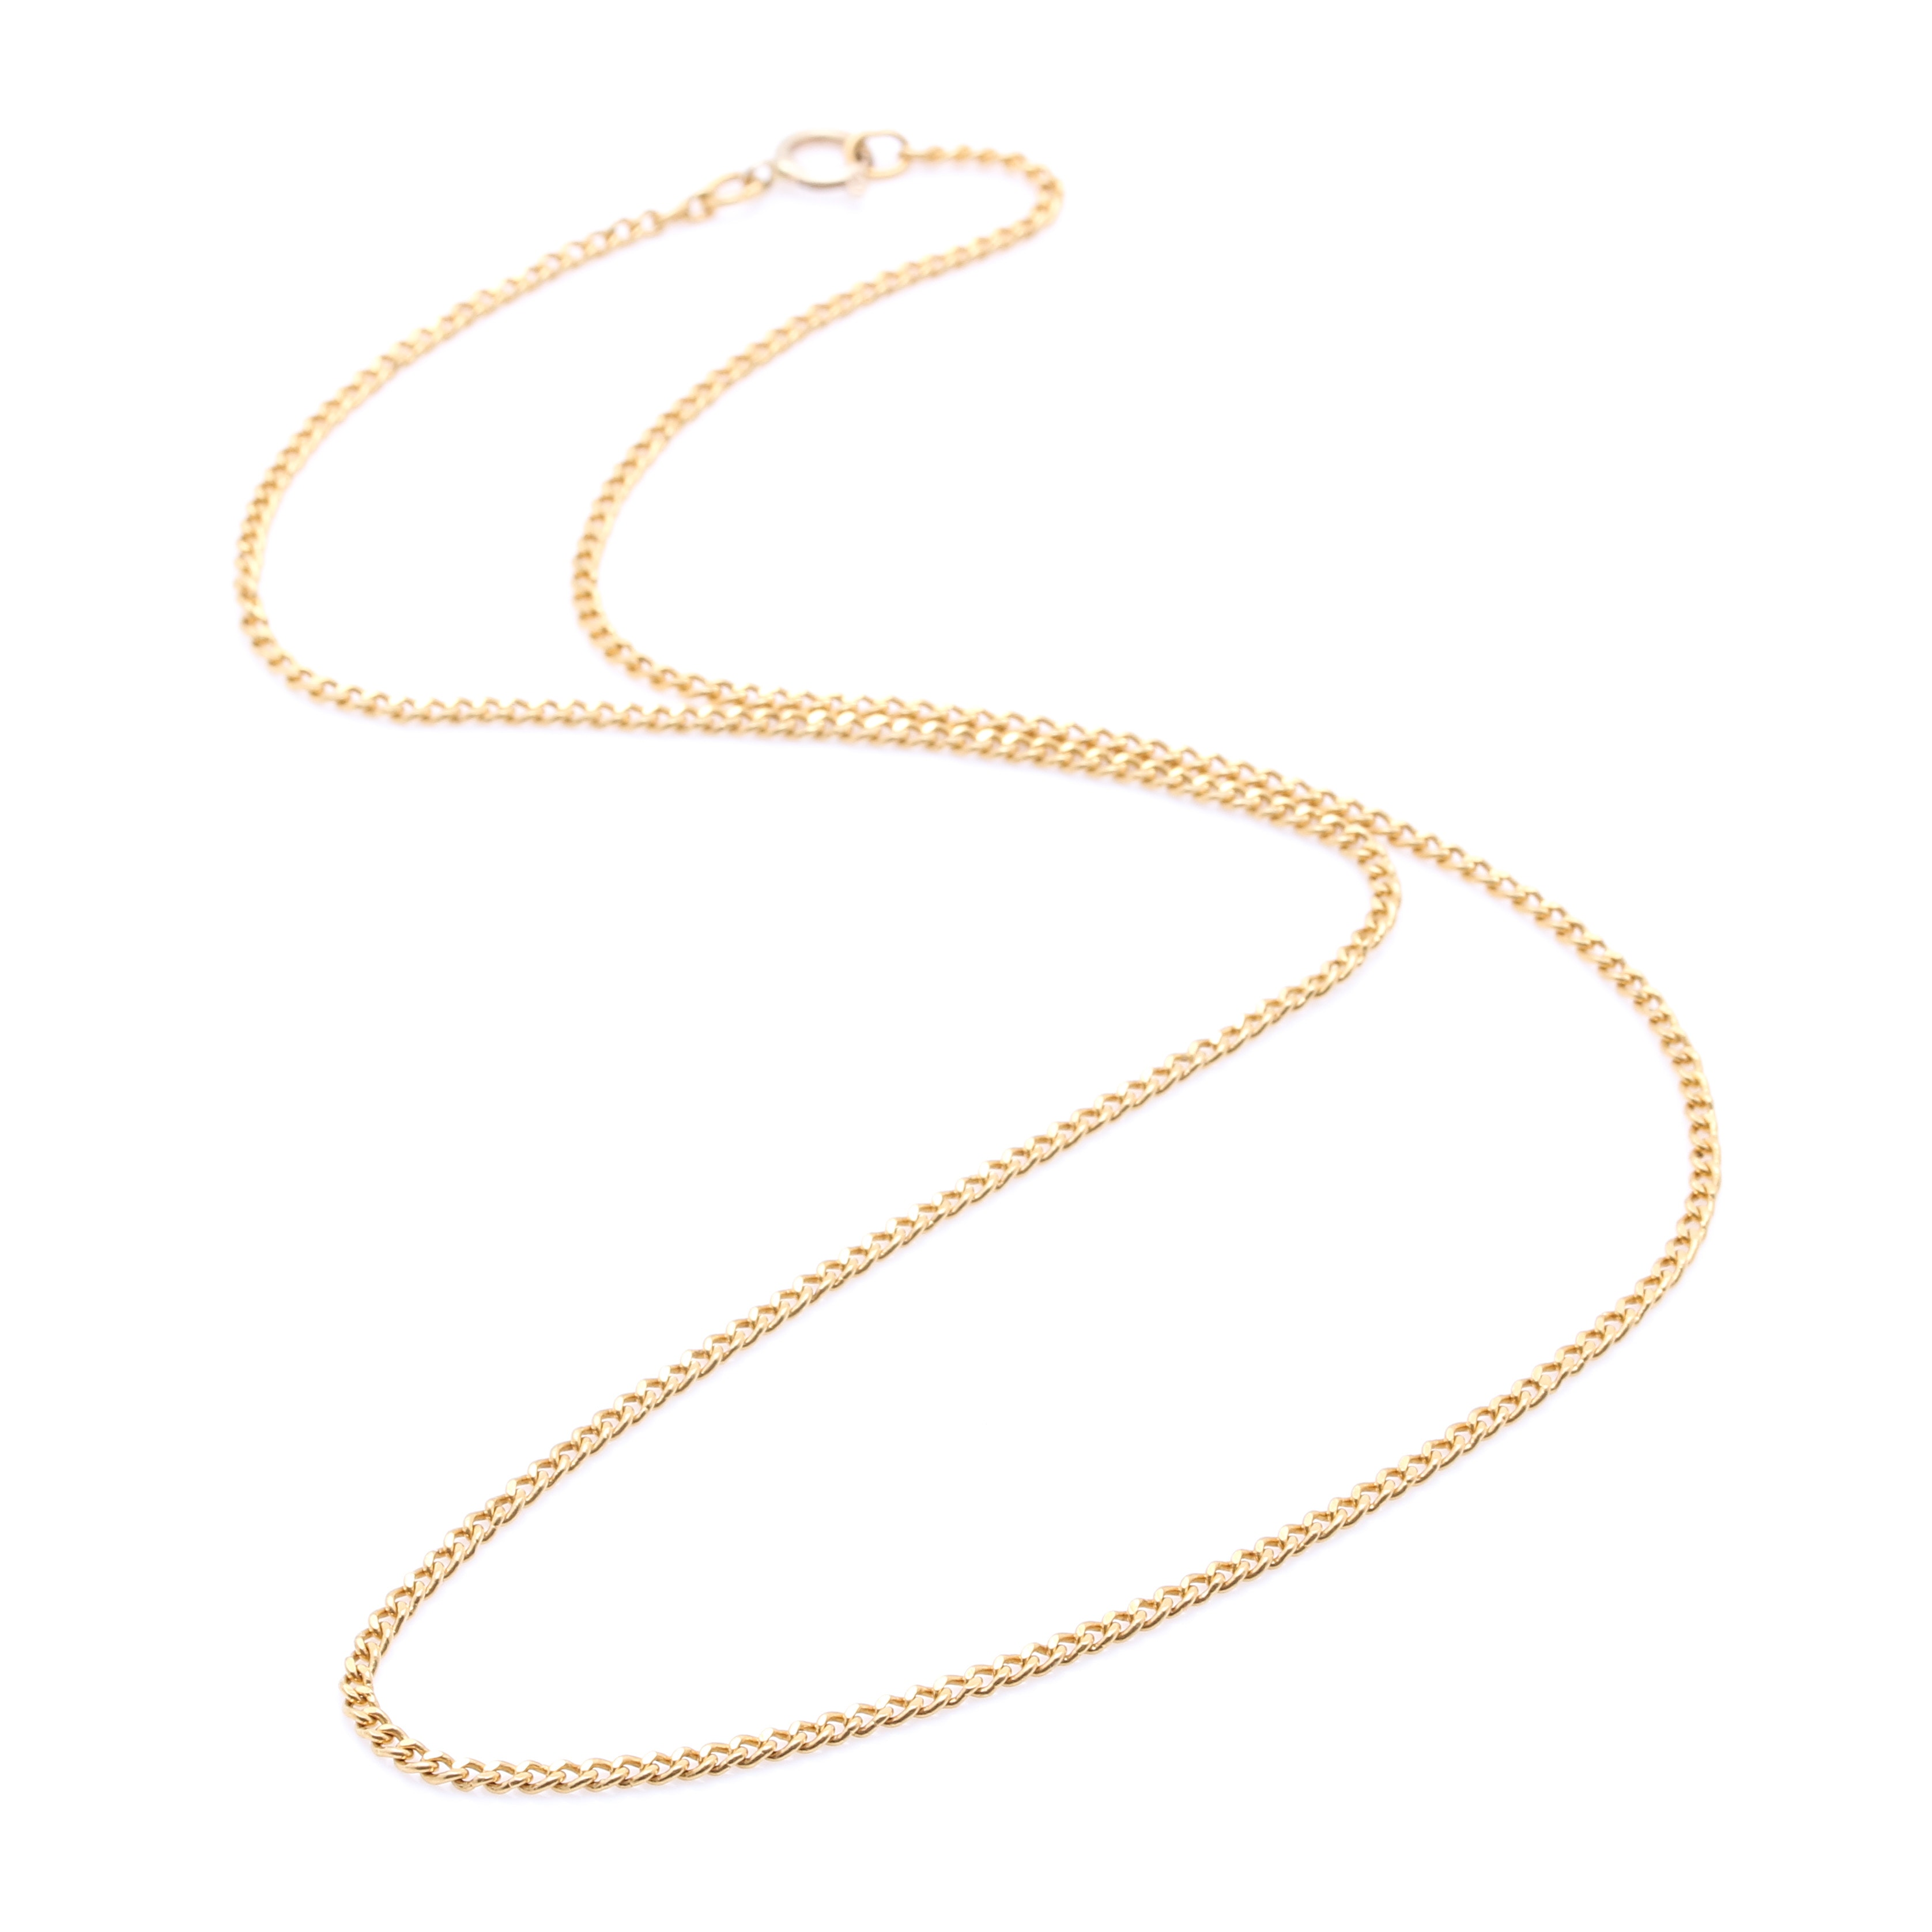 24K Yellow Gold Curb Chain Necklace